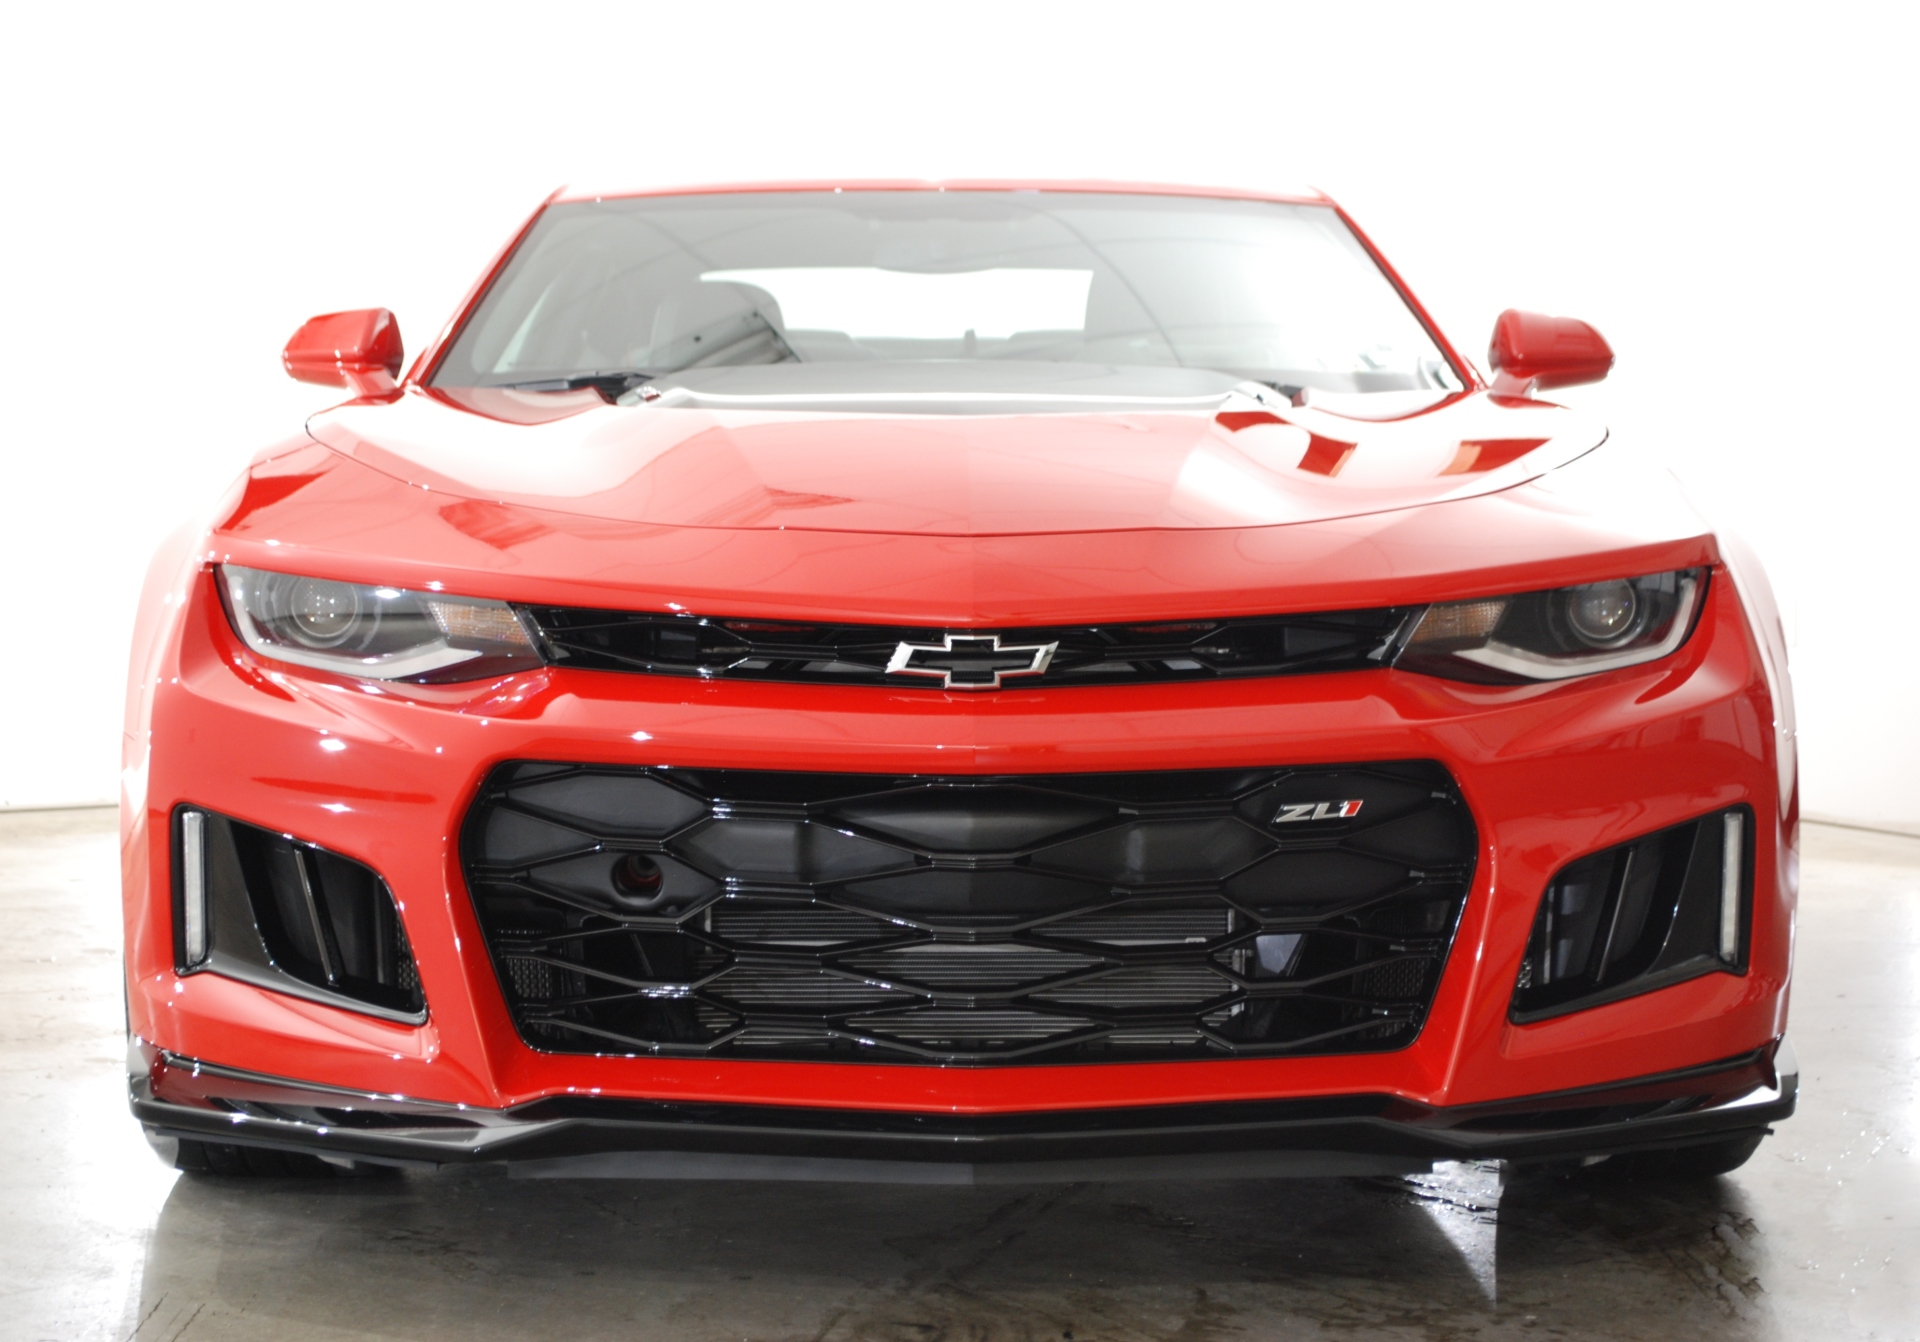 clear bra pittsburgh paint protection film pittsburgh auto detailing pittsburgh ceramic pro opti coat modesta pittsburgh cars and coffee suntek xpel 3m